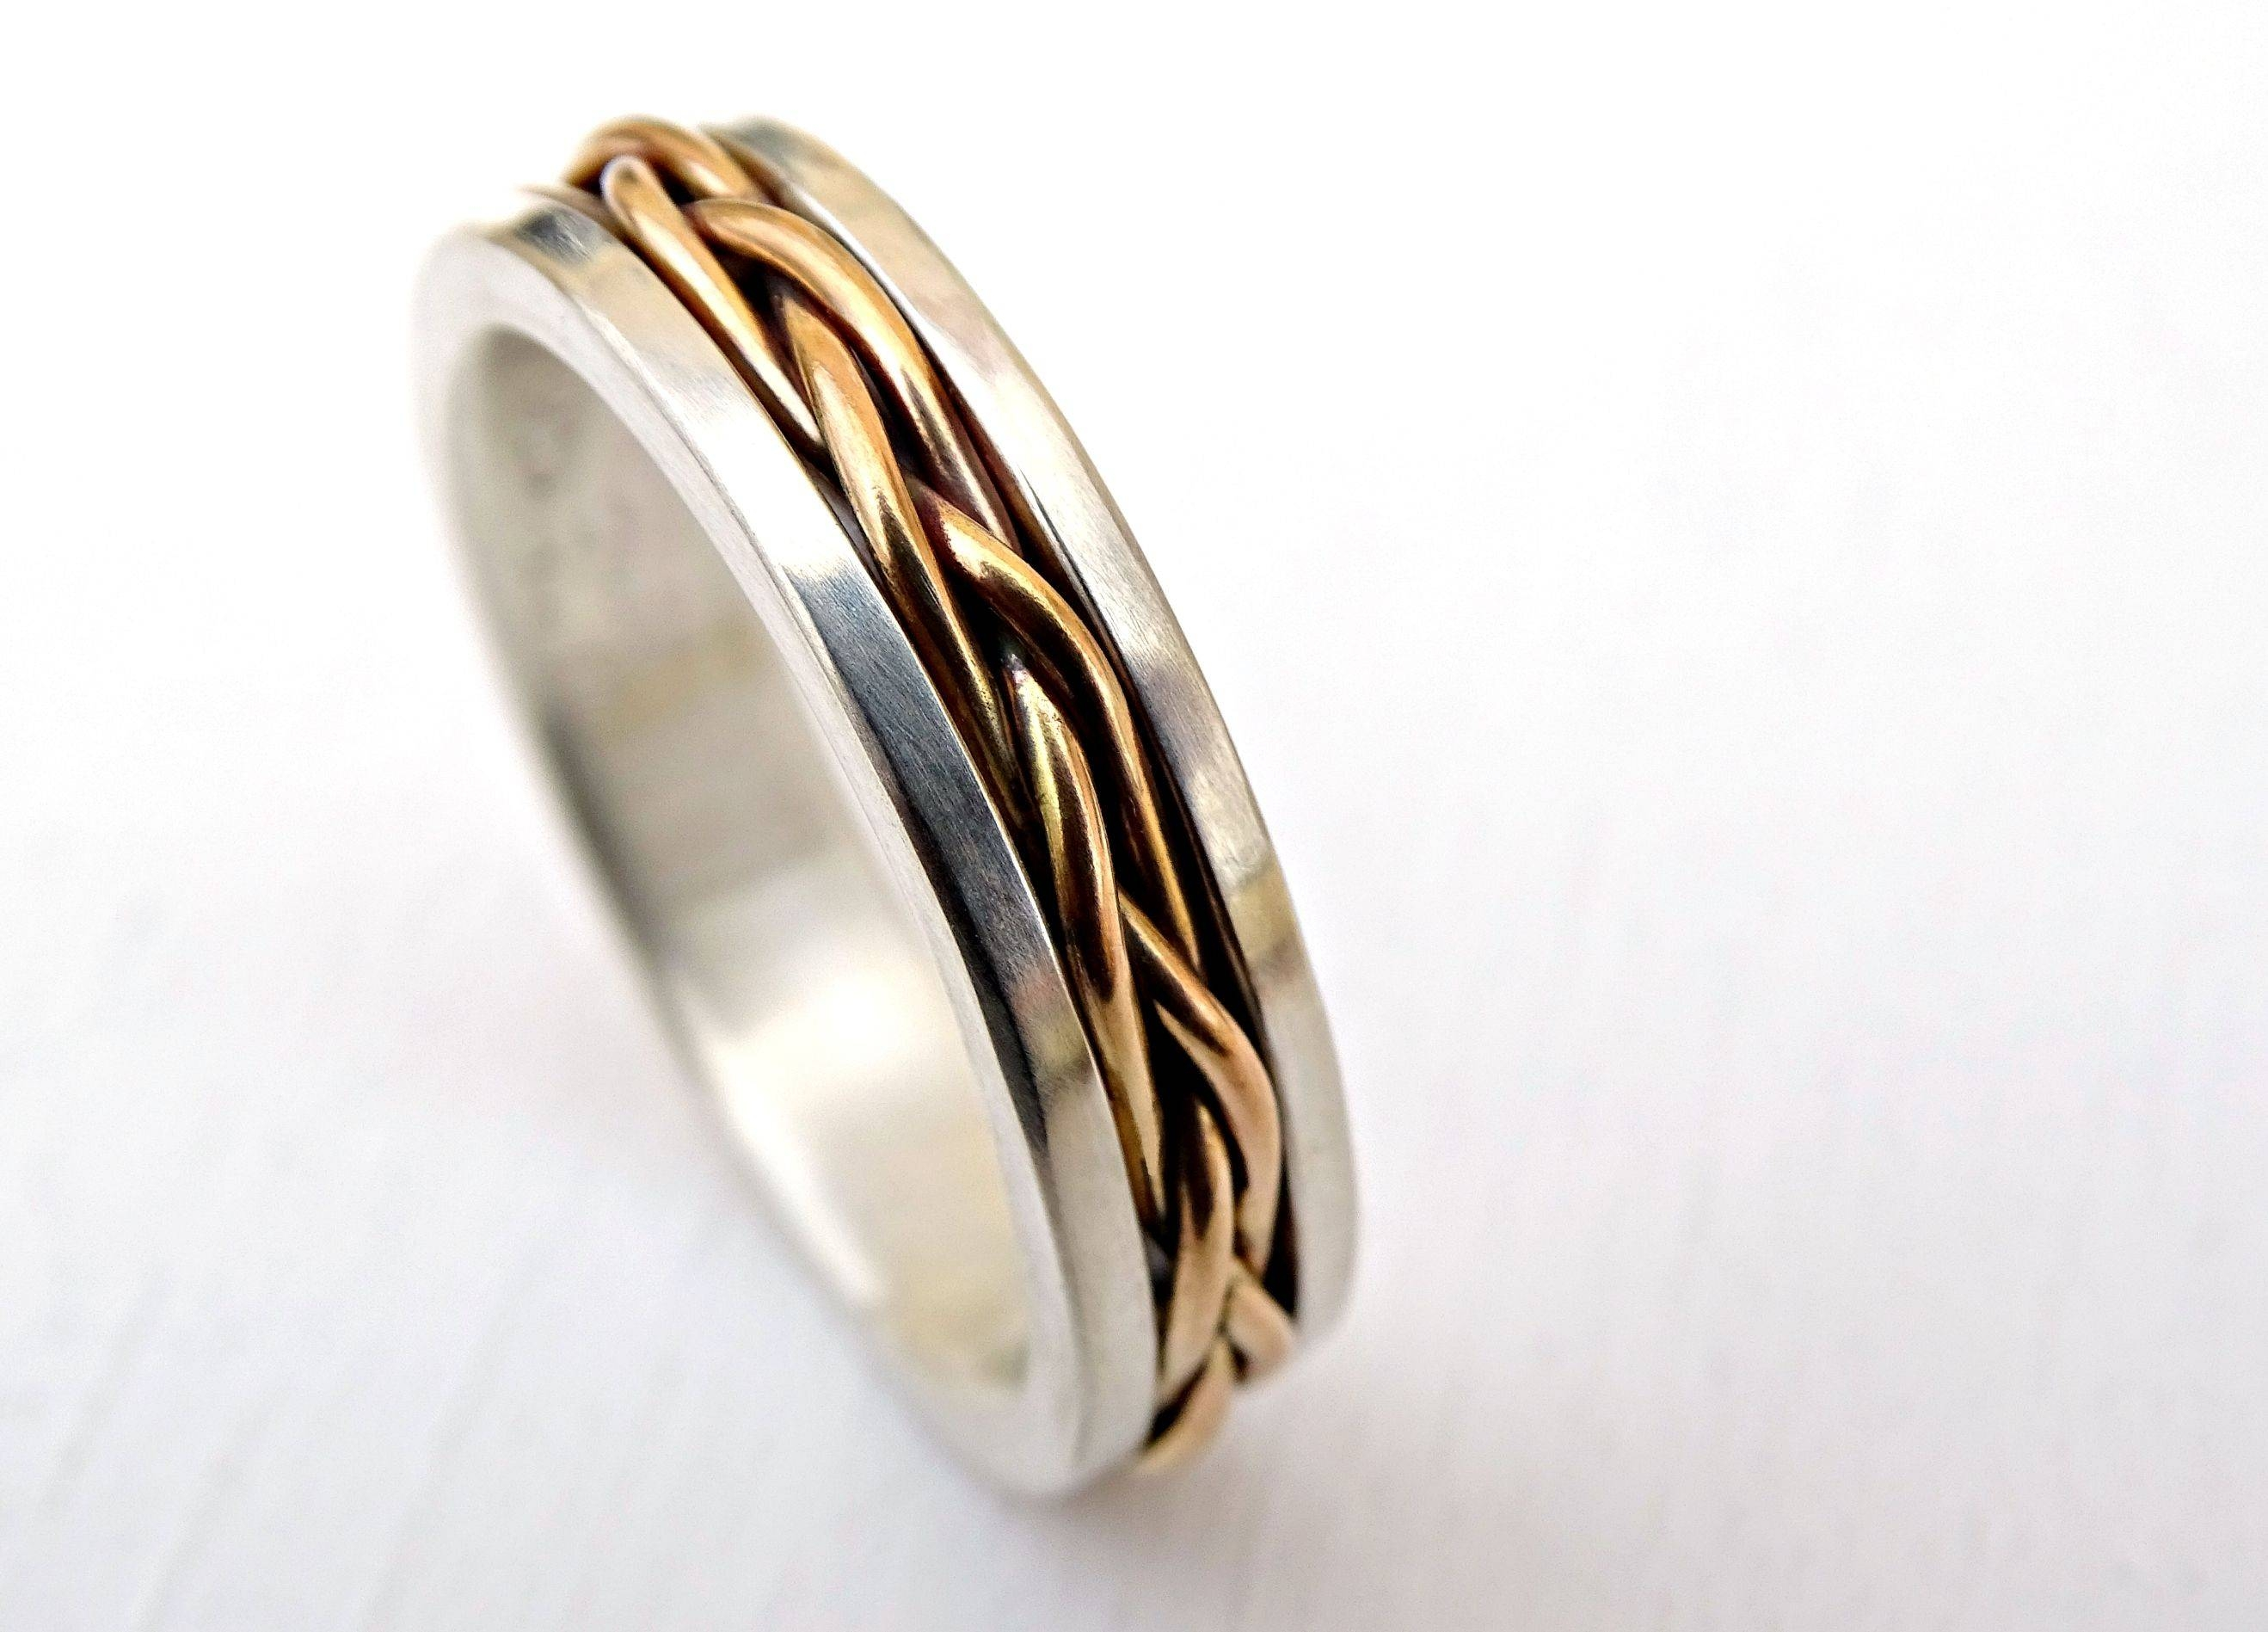 Buy A Custom Made Celtic Wedding Band Men, Gold Braided Wedding Intended For Mens Braided Wedding Bands (View 13 of 15)